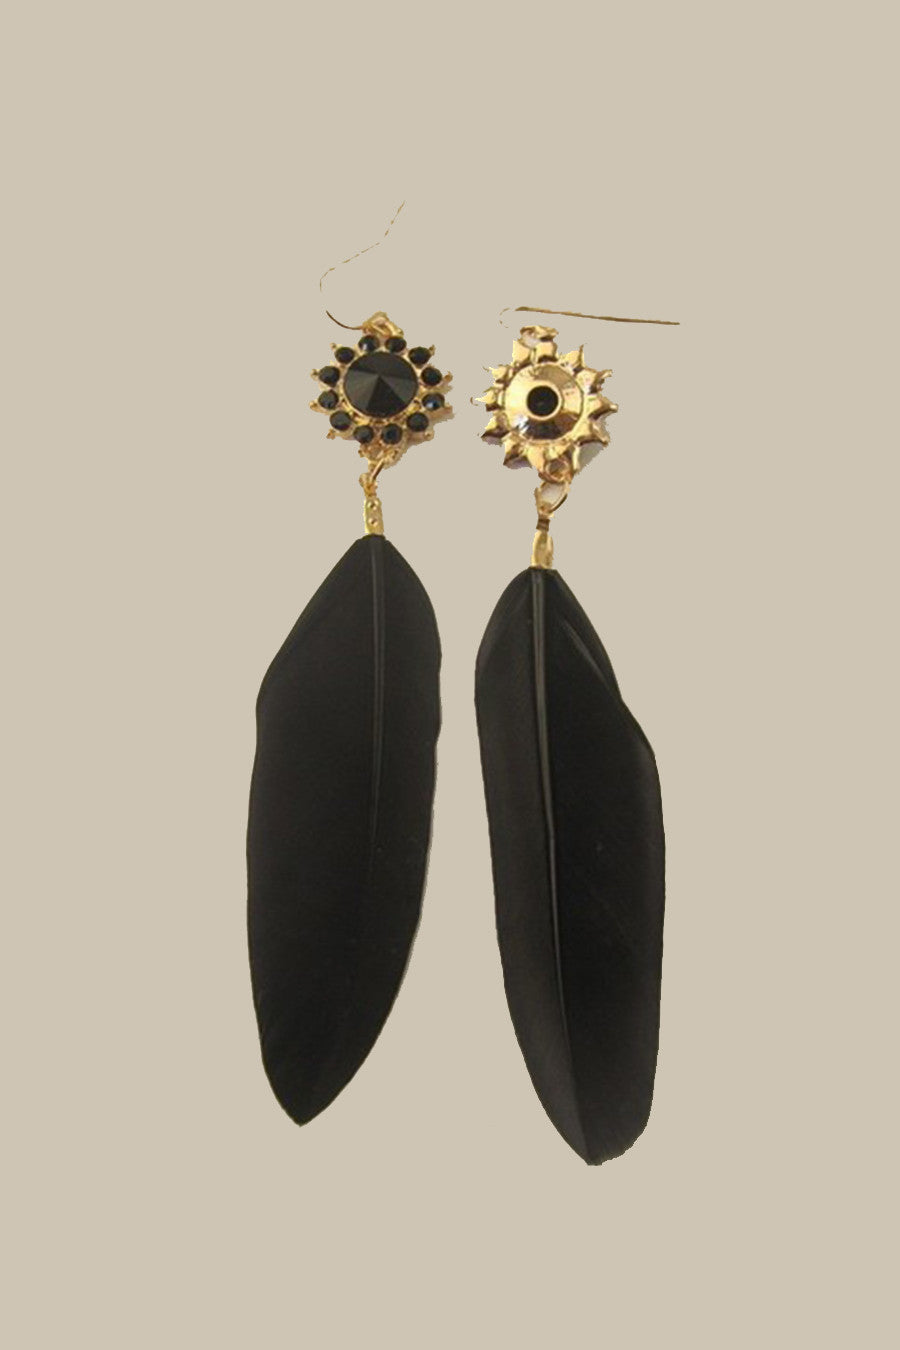 Blck Bead Feather Earrings